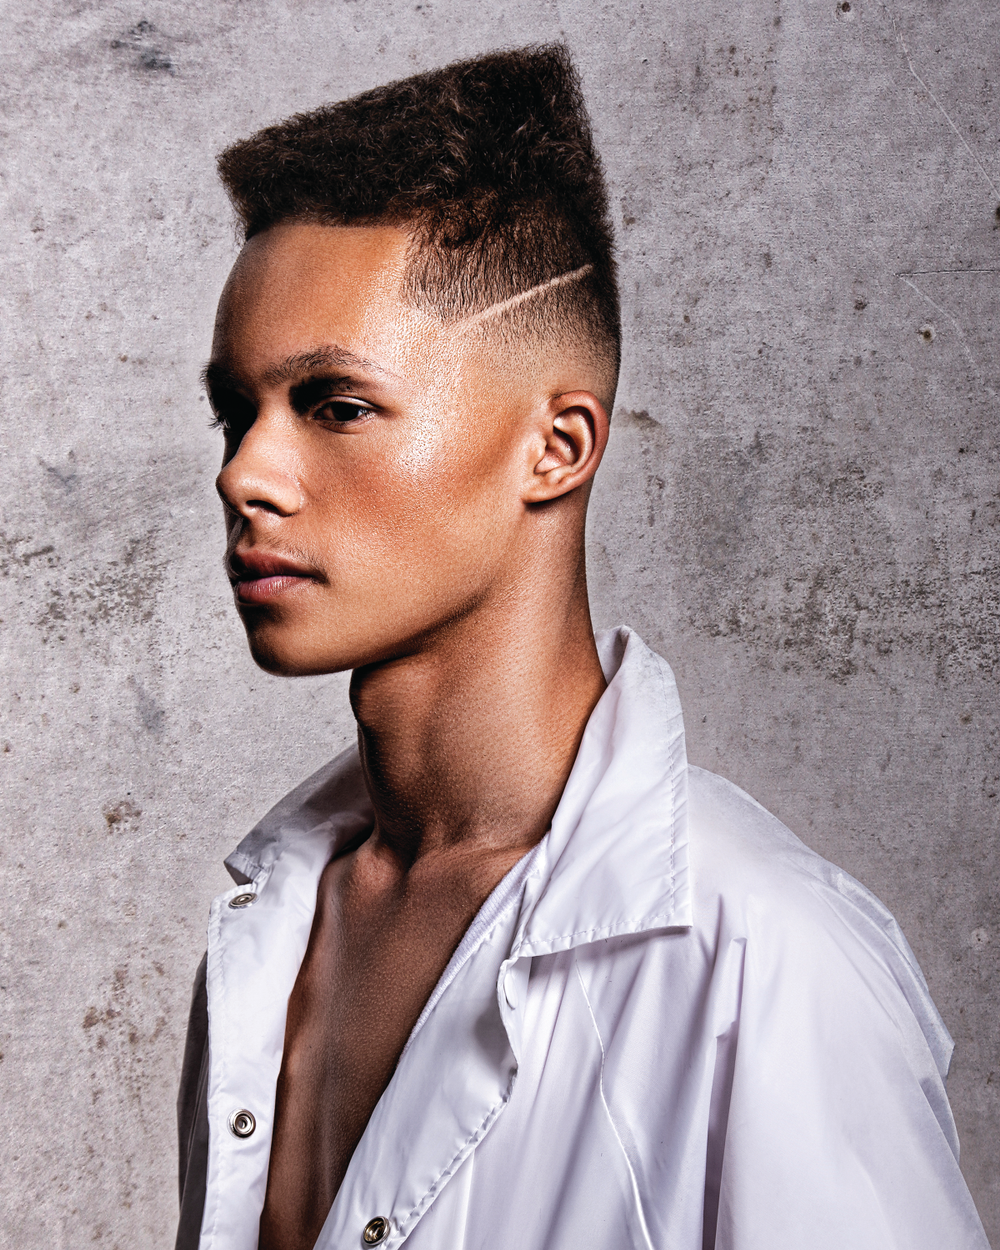 <p>Zero Movement: PALACE</p>  <p>Taking inspiration from Grace Jones, Bustos began with a skin-tight blend stretched to create a seamless transition into the top lengths.&ldquo;The shape and flow of this hair cut starts from the collarbone acting as the foundation,&rdquo; Bustos explains. &ldquo;Follow the sternocleidomastoid muscle up the neck and around the occipital bone to create a soft arch that aggressively shifts into a sharp corner, dropping gradually in length toward the front hairline.&rdquo;The trajectory of the angle of the way the hair was cut on top stays parallel and consistent with the model&rsquo;s cheekbones, jawline, and down to the collarbone. An accent parting was carved onto the side starting at the temple, also staying consistent with the angles of the model&rsquo;s strong features.</p>